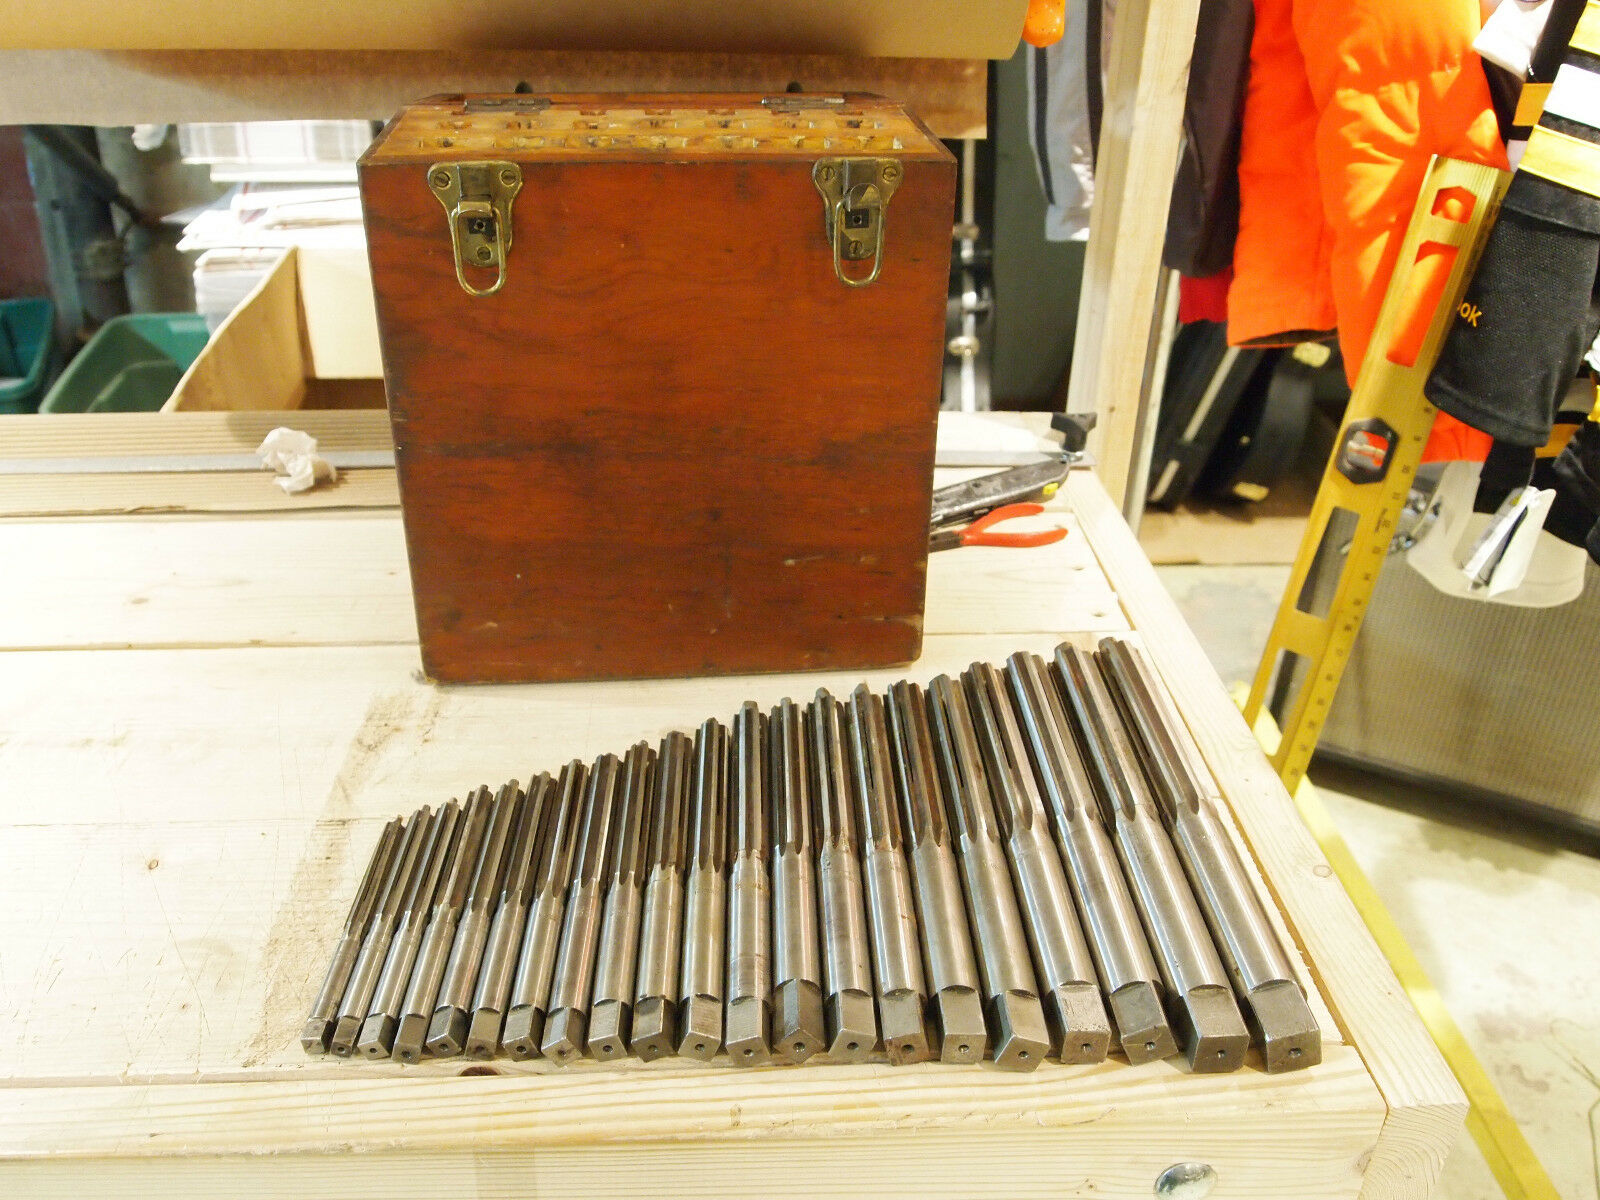 PEERLESS CLEVELAND CO. 21 PIECE REAMER SET WITH CASE